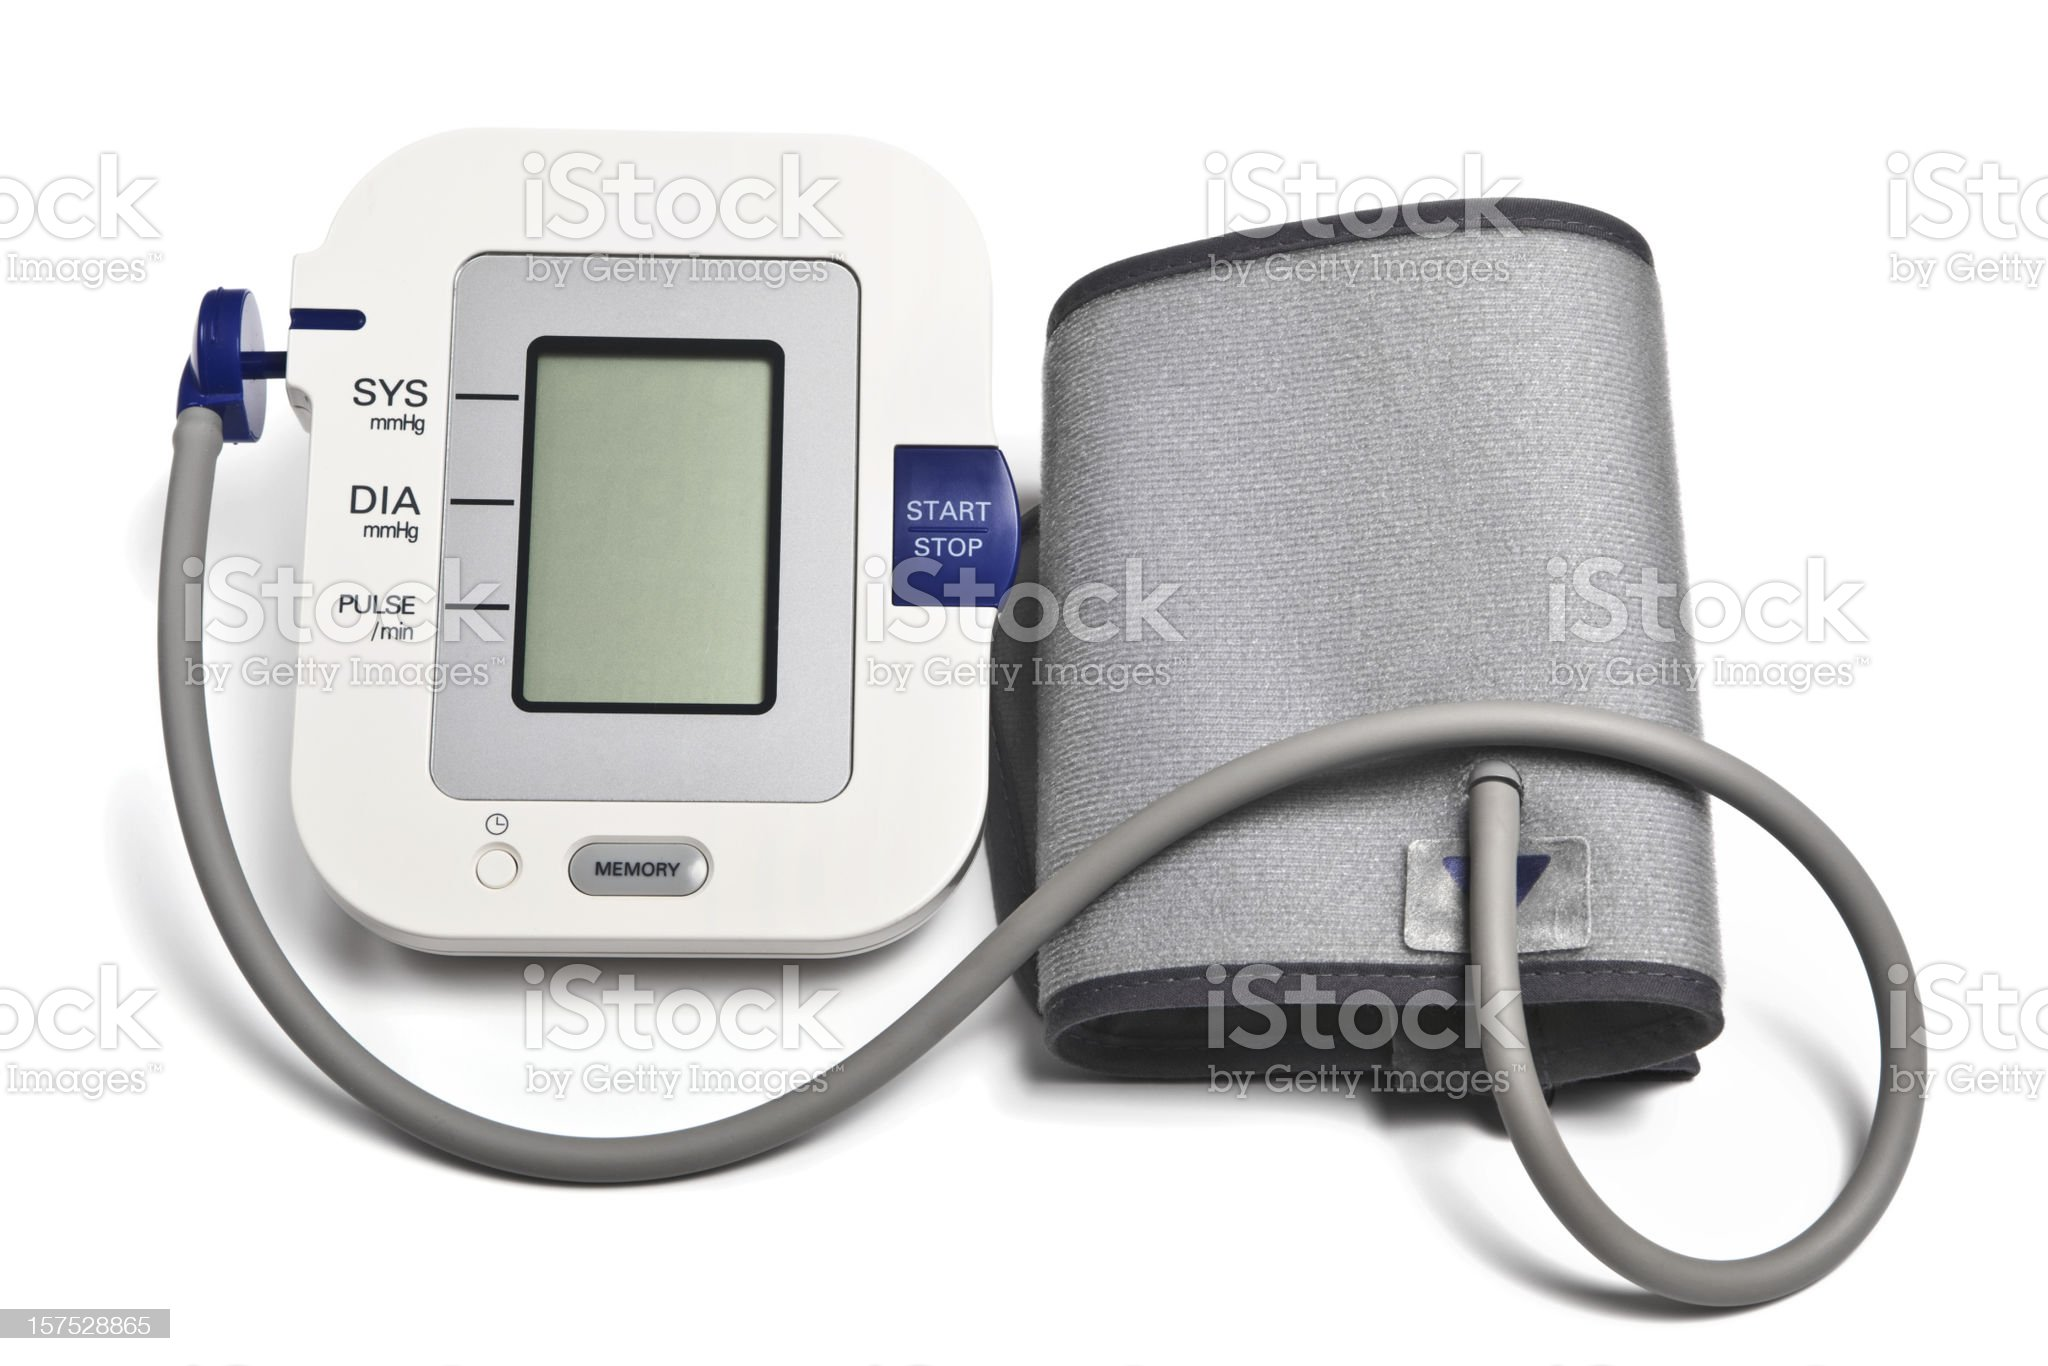 Blood Pressure Monitor for Home Use royalty-free stock photo